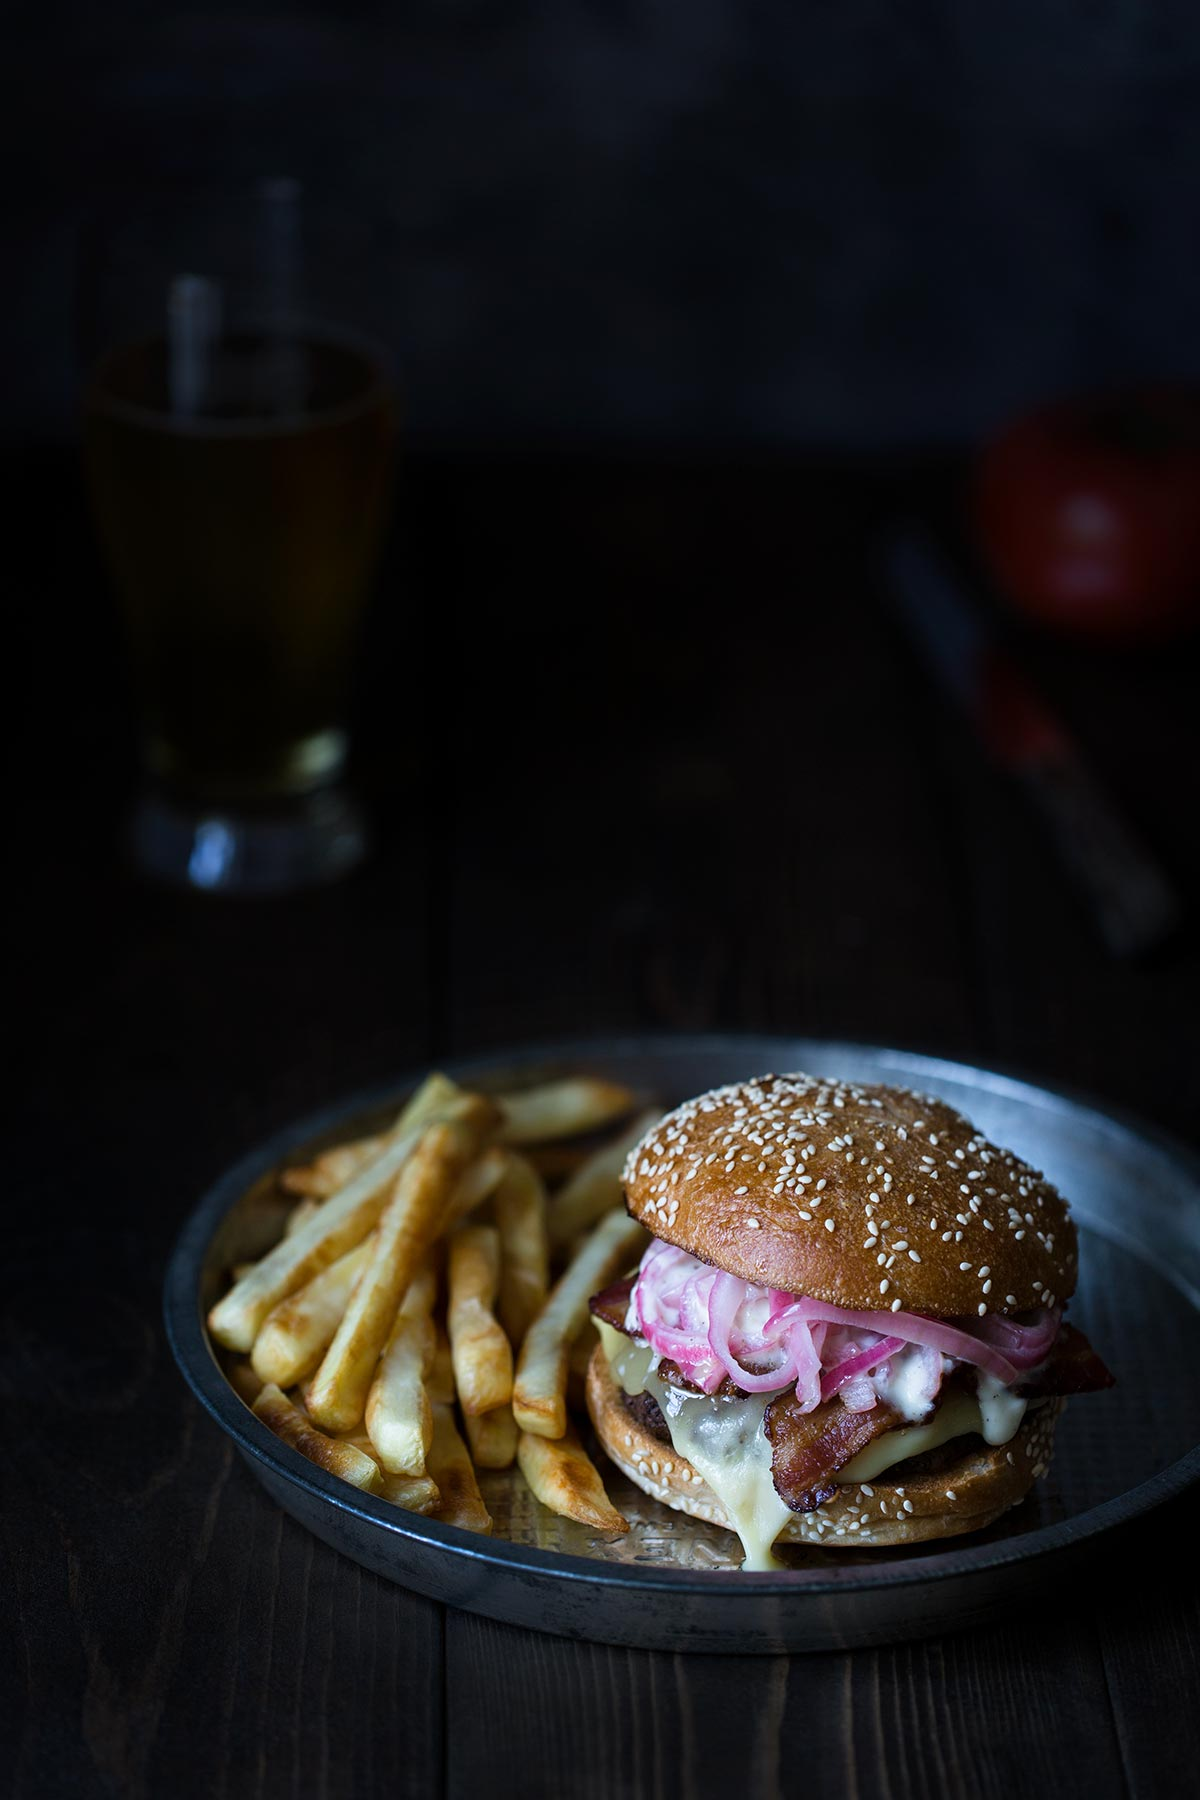 A raclette bacon cheeseburger topped with pickled shallots, horseradish aioli, served on a plate with french fries.